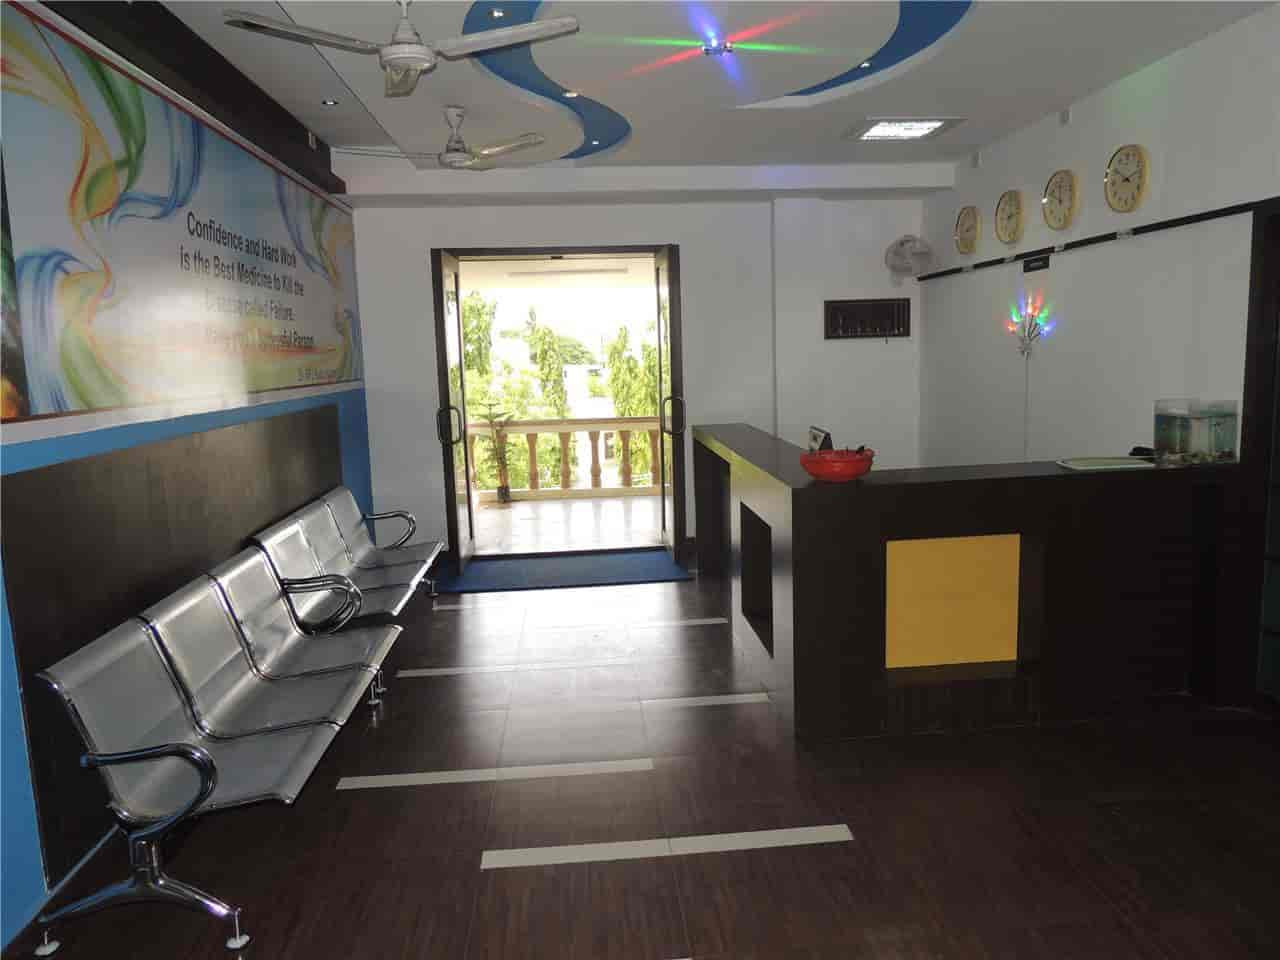 Gesto Hotel Management College Kk Nagar Madurai Education Consultants In Madurai Justdial